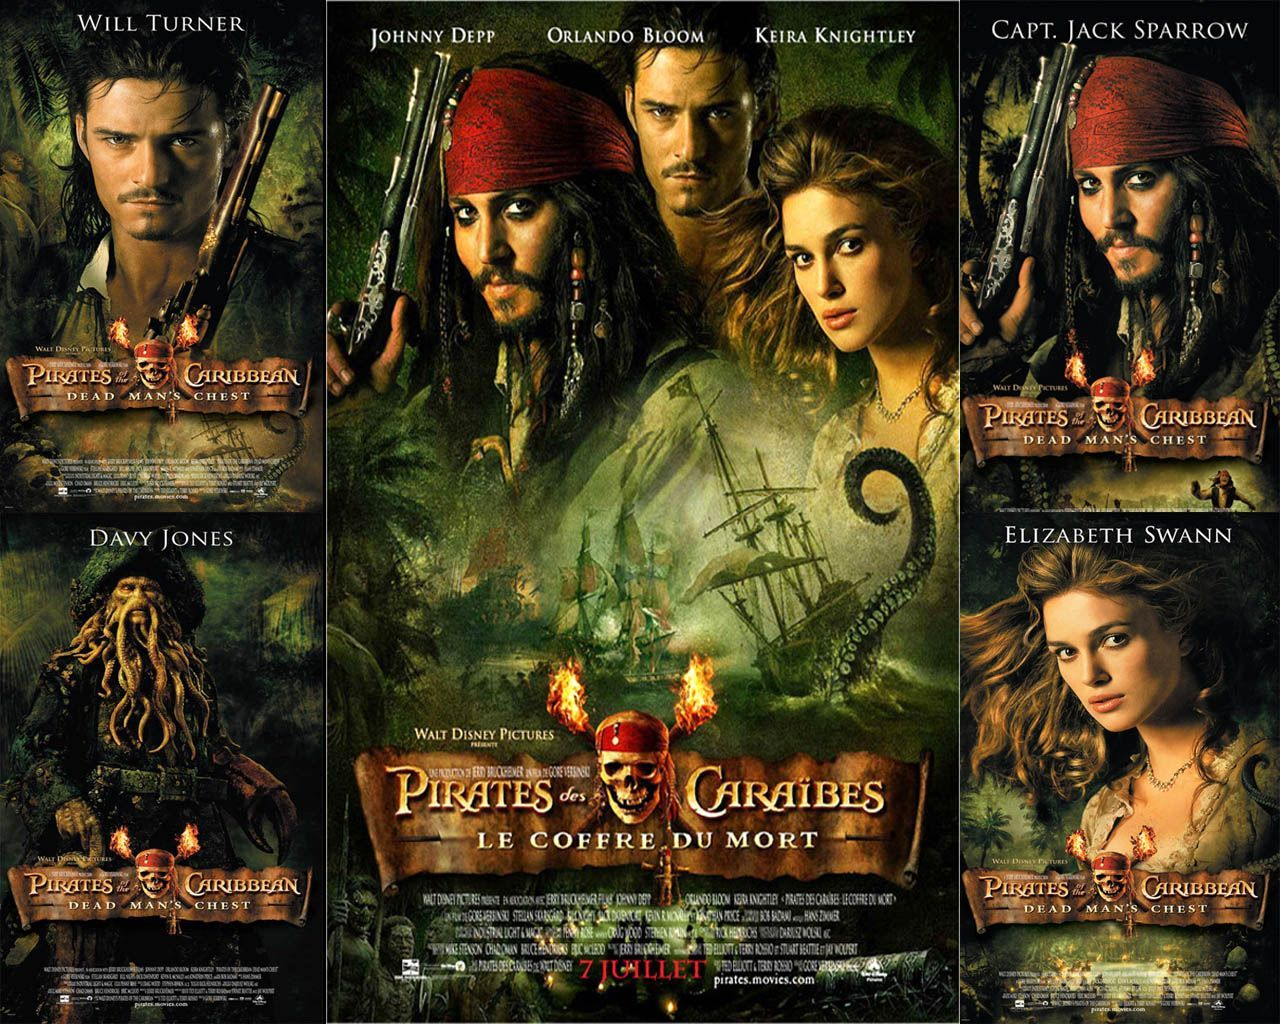 musical analysis on pirates of the